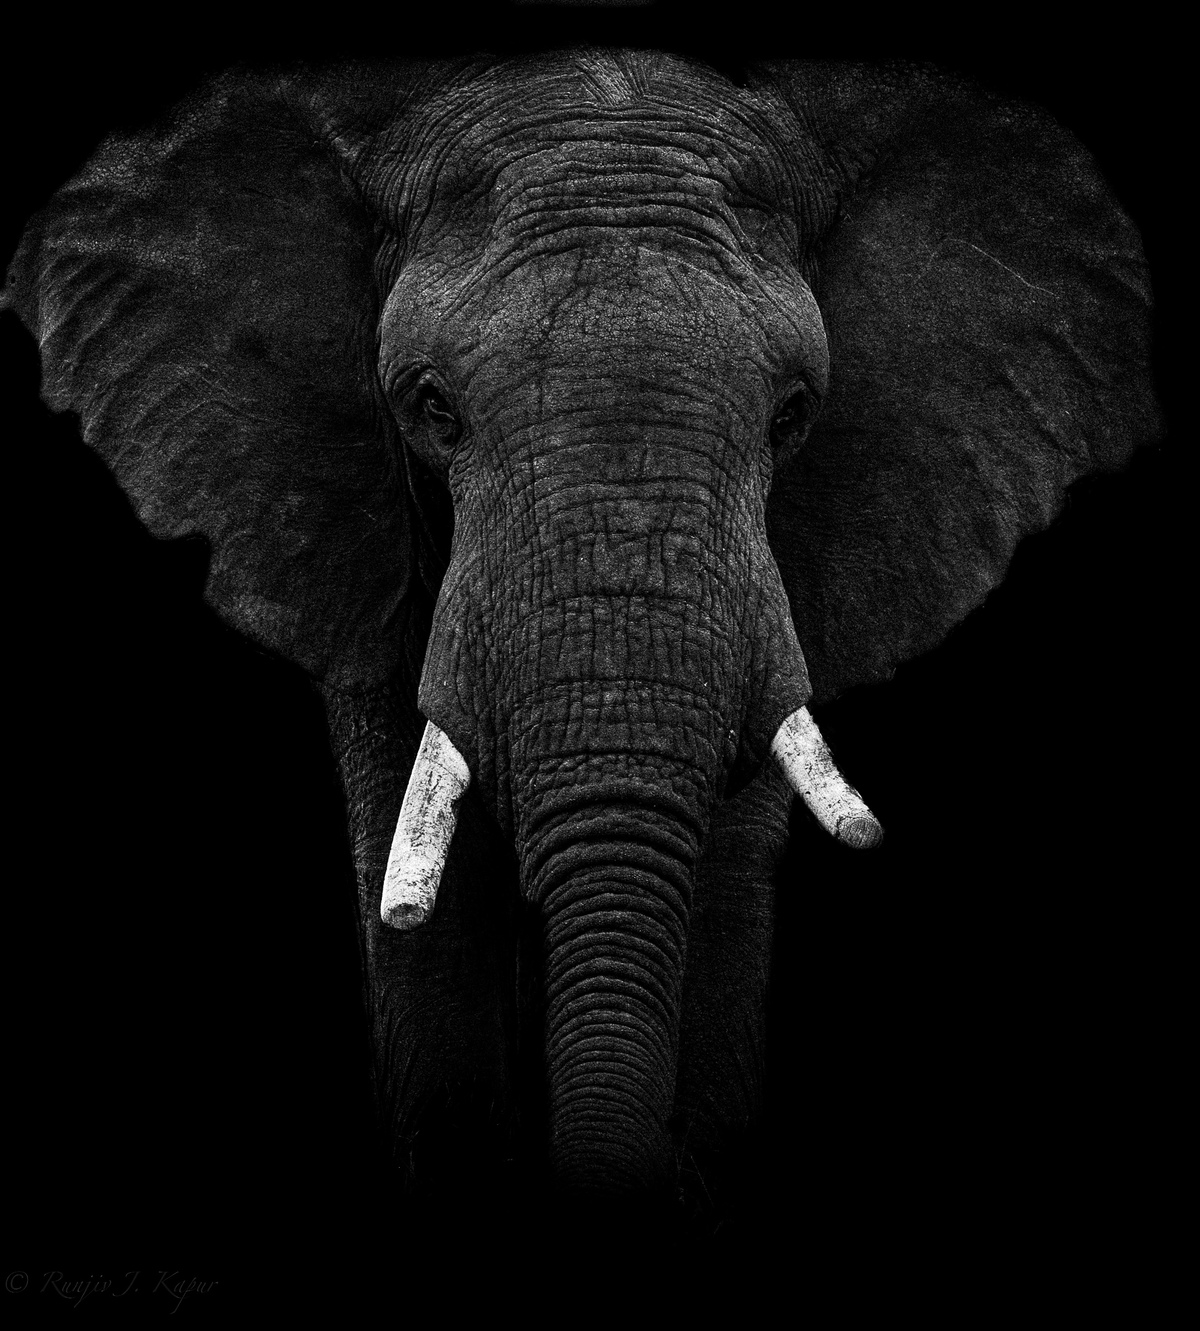 African Bull Elephant by Runjiv J. Kapur, Image Photography, Digital Print on Canvas, Black color